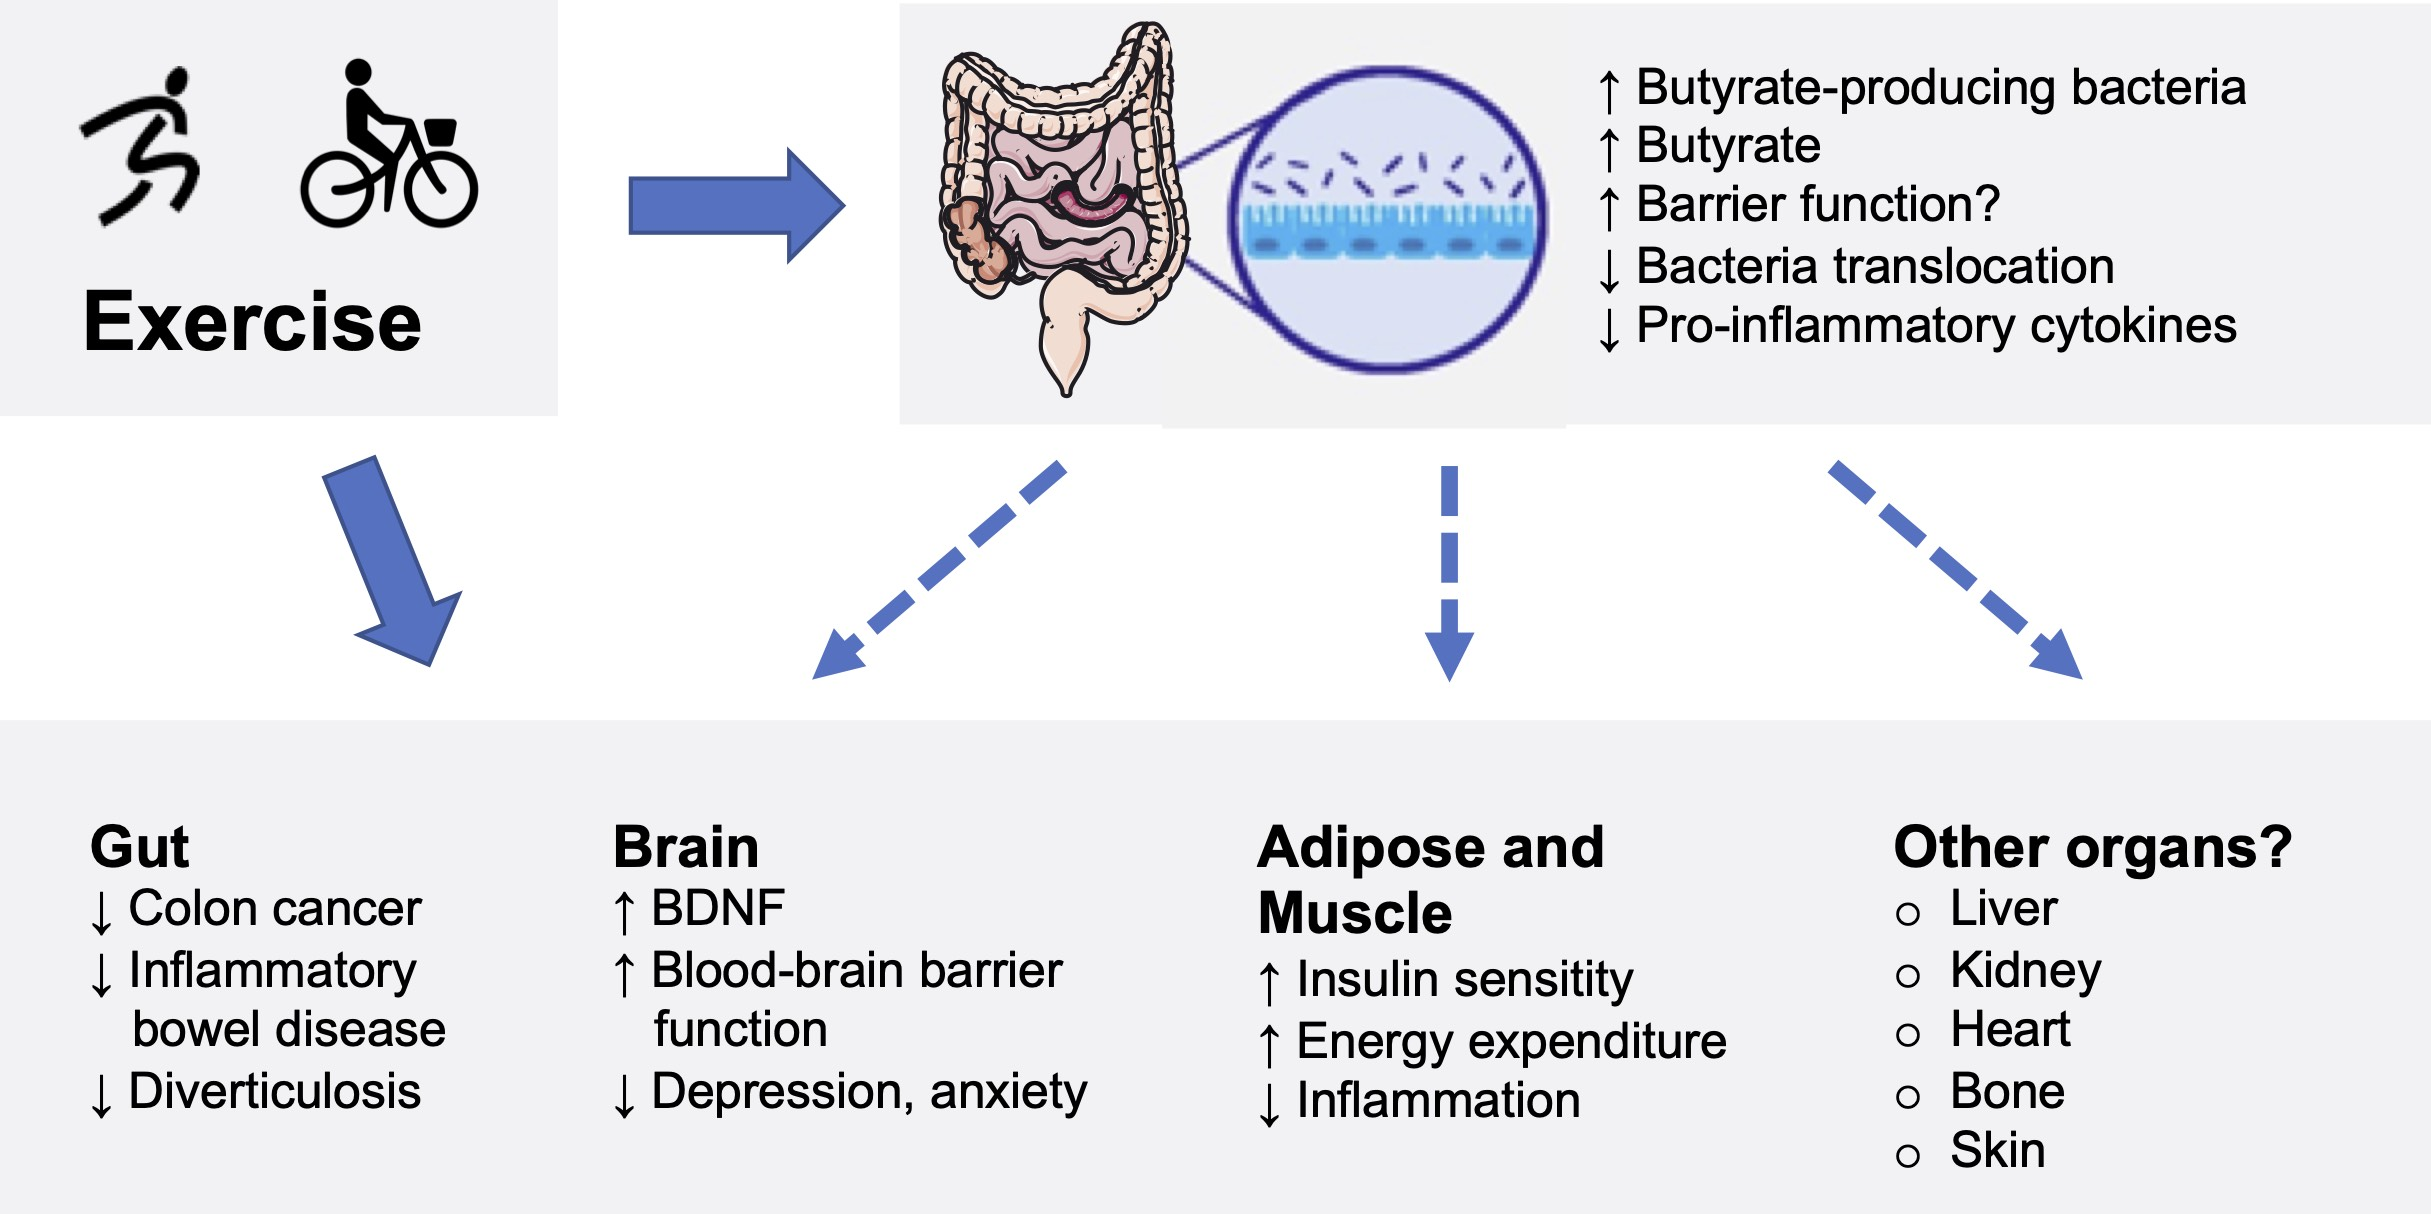 Figure. Changes in the gut microbiota and intestinal epithelium through exercise and health benefits. BDNF: Brain-derived neurotrophic factor (growth factor).